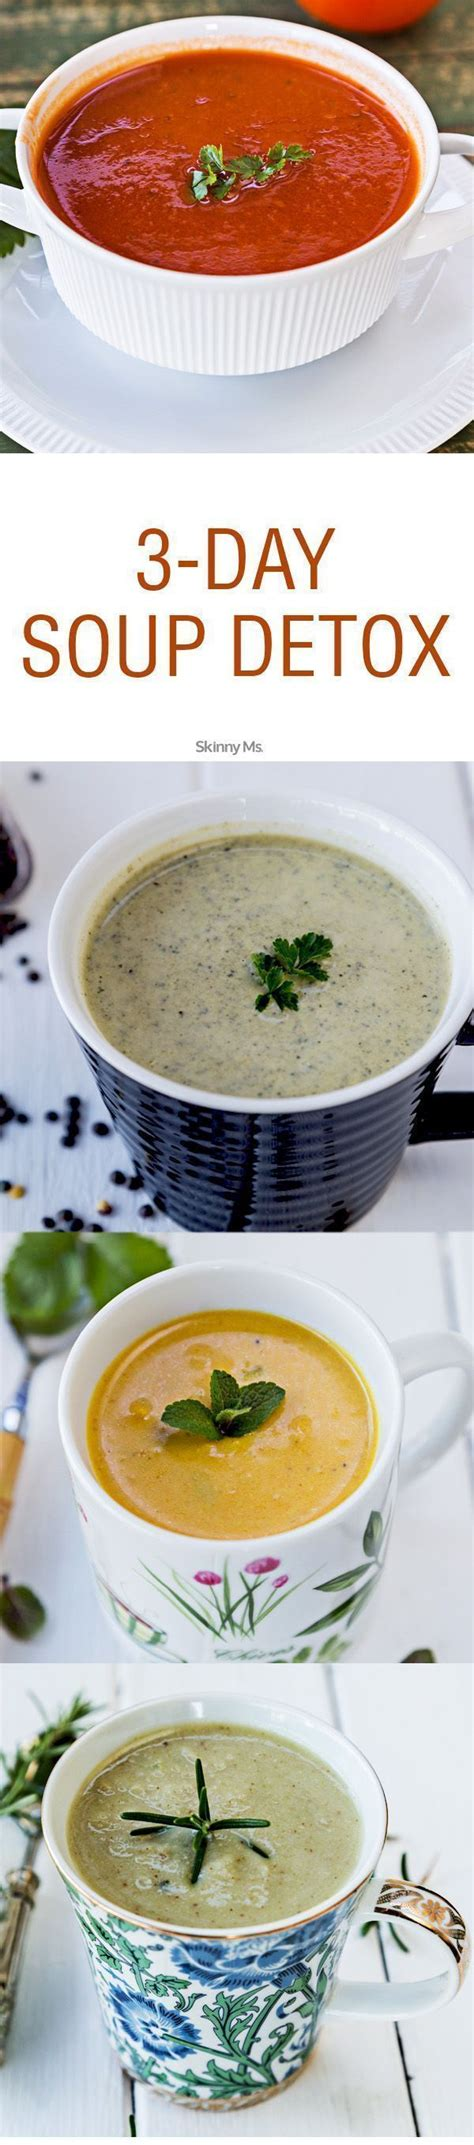 Cleansing Detox Soup by 3 Day Soup Detox Just Detoxify Your And